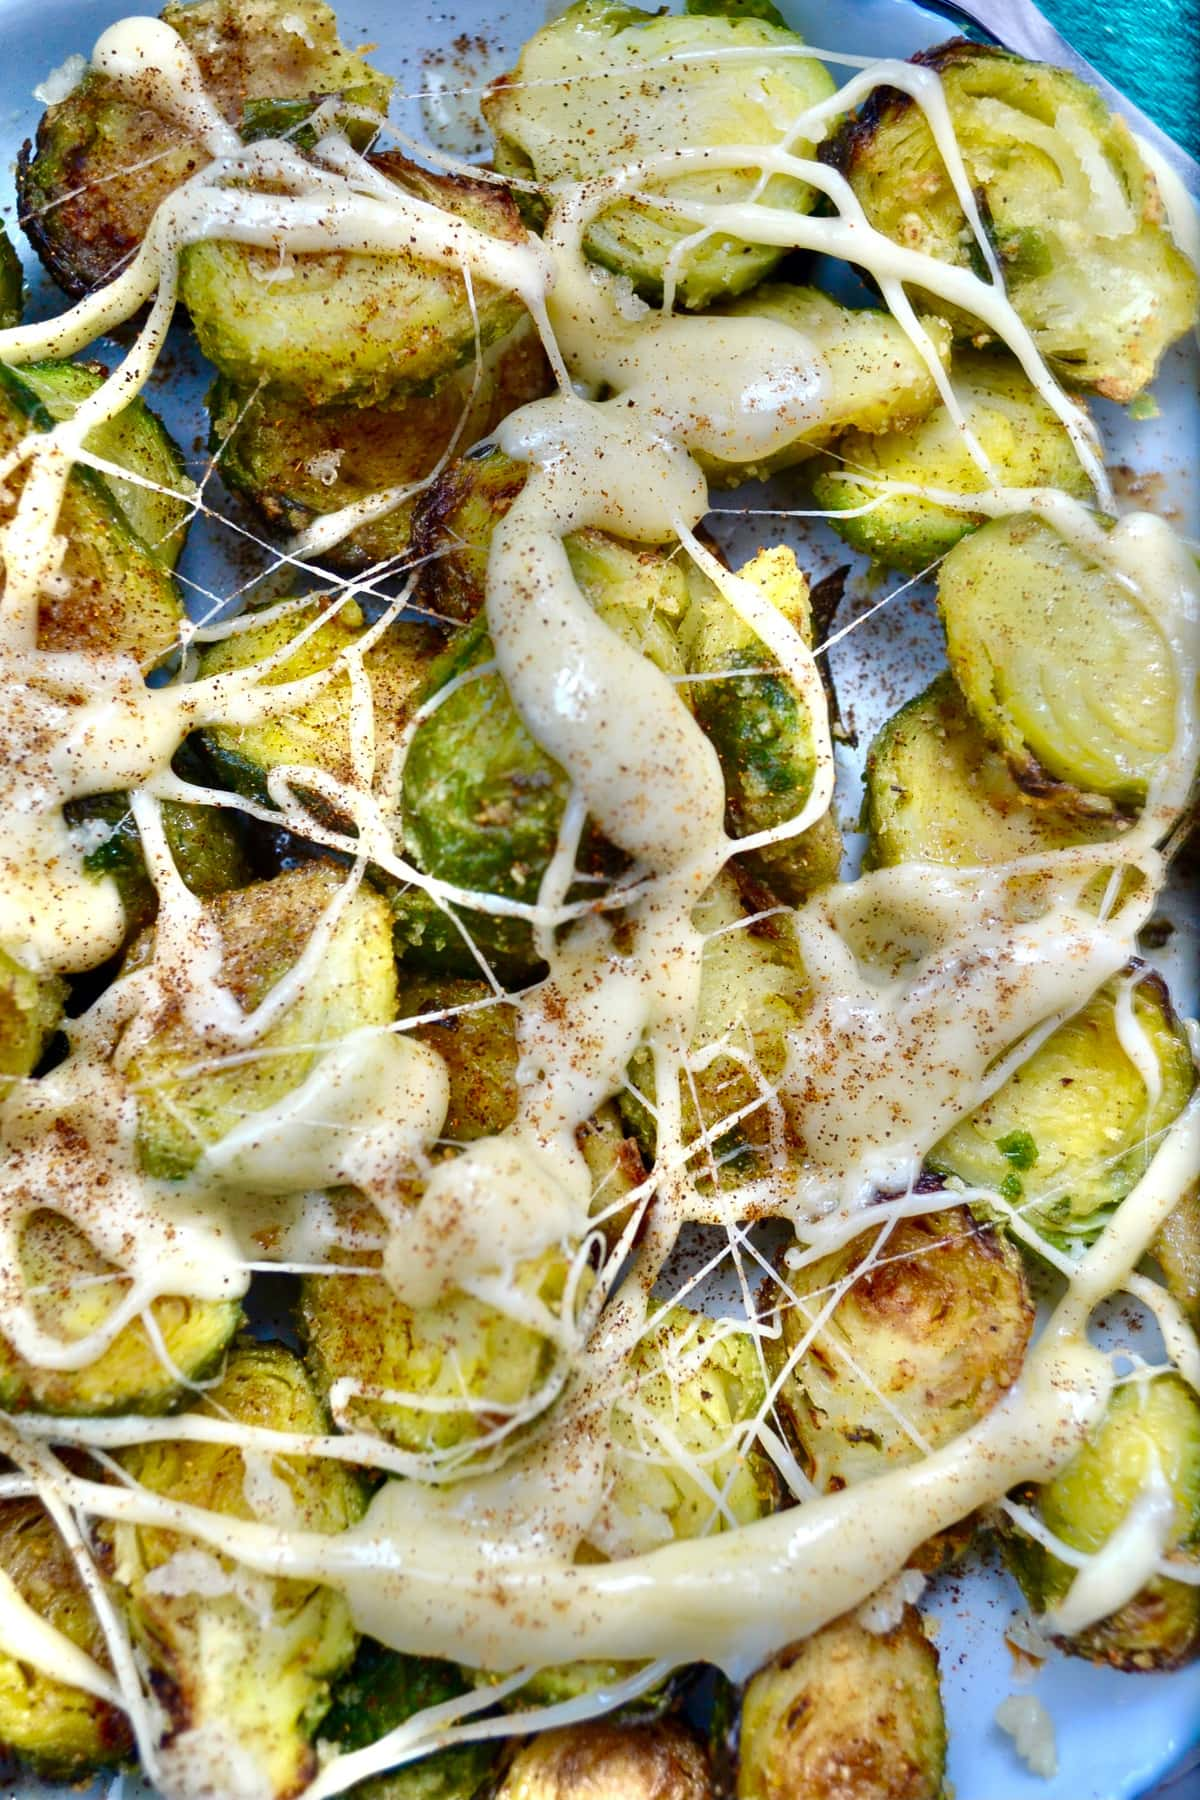 Keto Air Fryer Garlic Brussels Sprouts served with spicy sauce